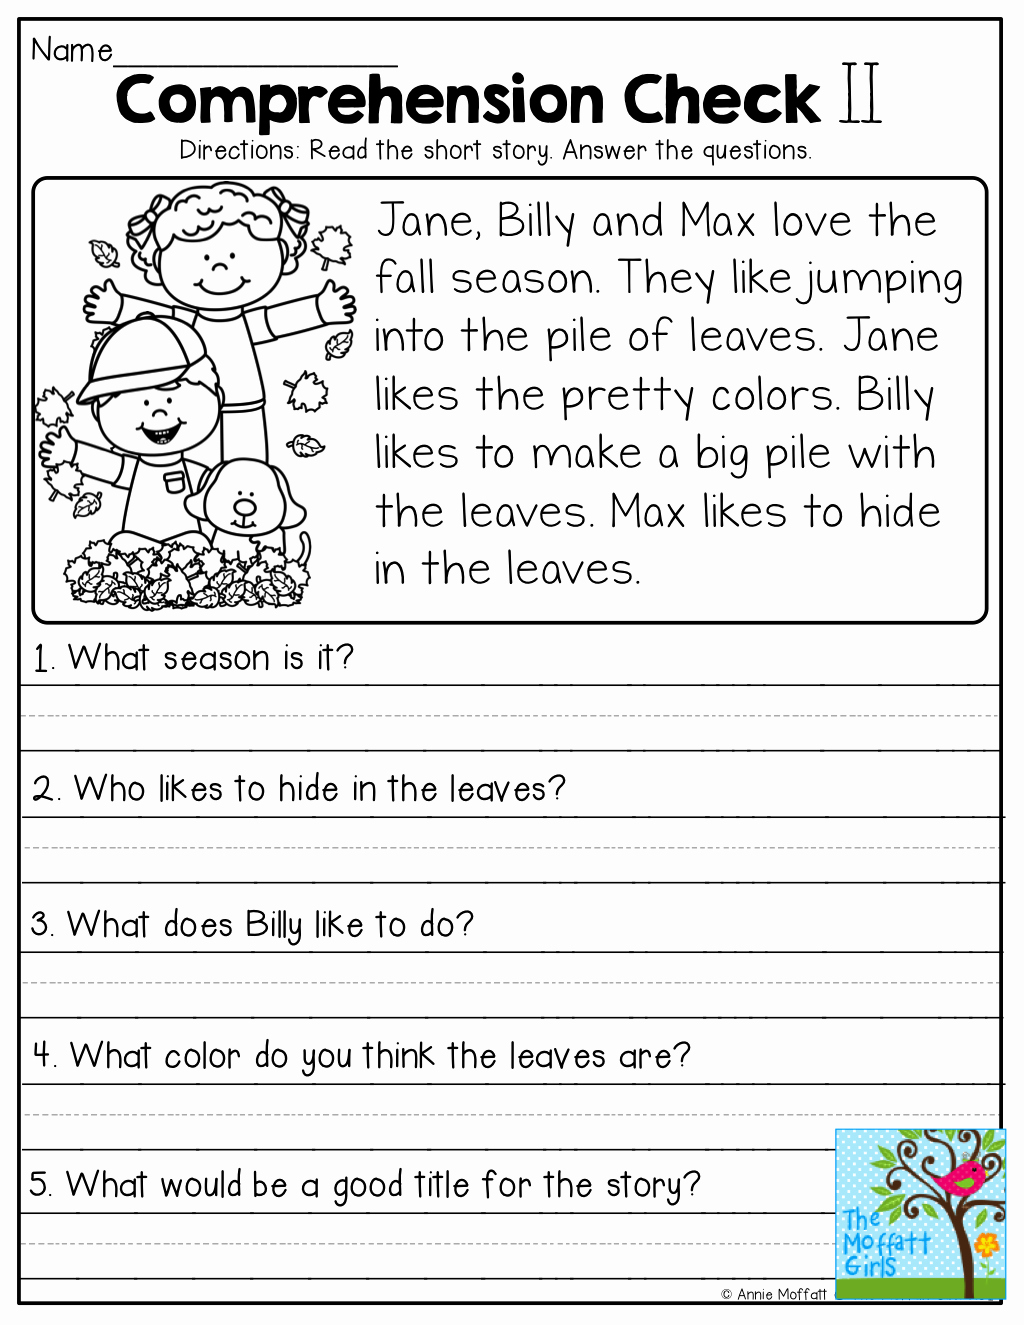 Proofreading Worksheets 3rd Grade Awesome Free Printable Reading Prehension Worksheets for 3rd